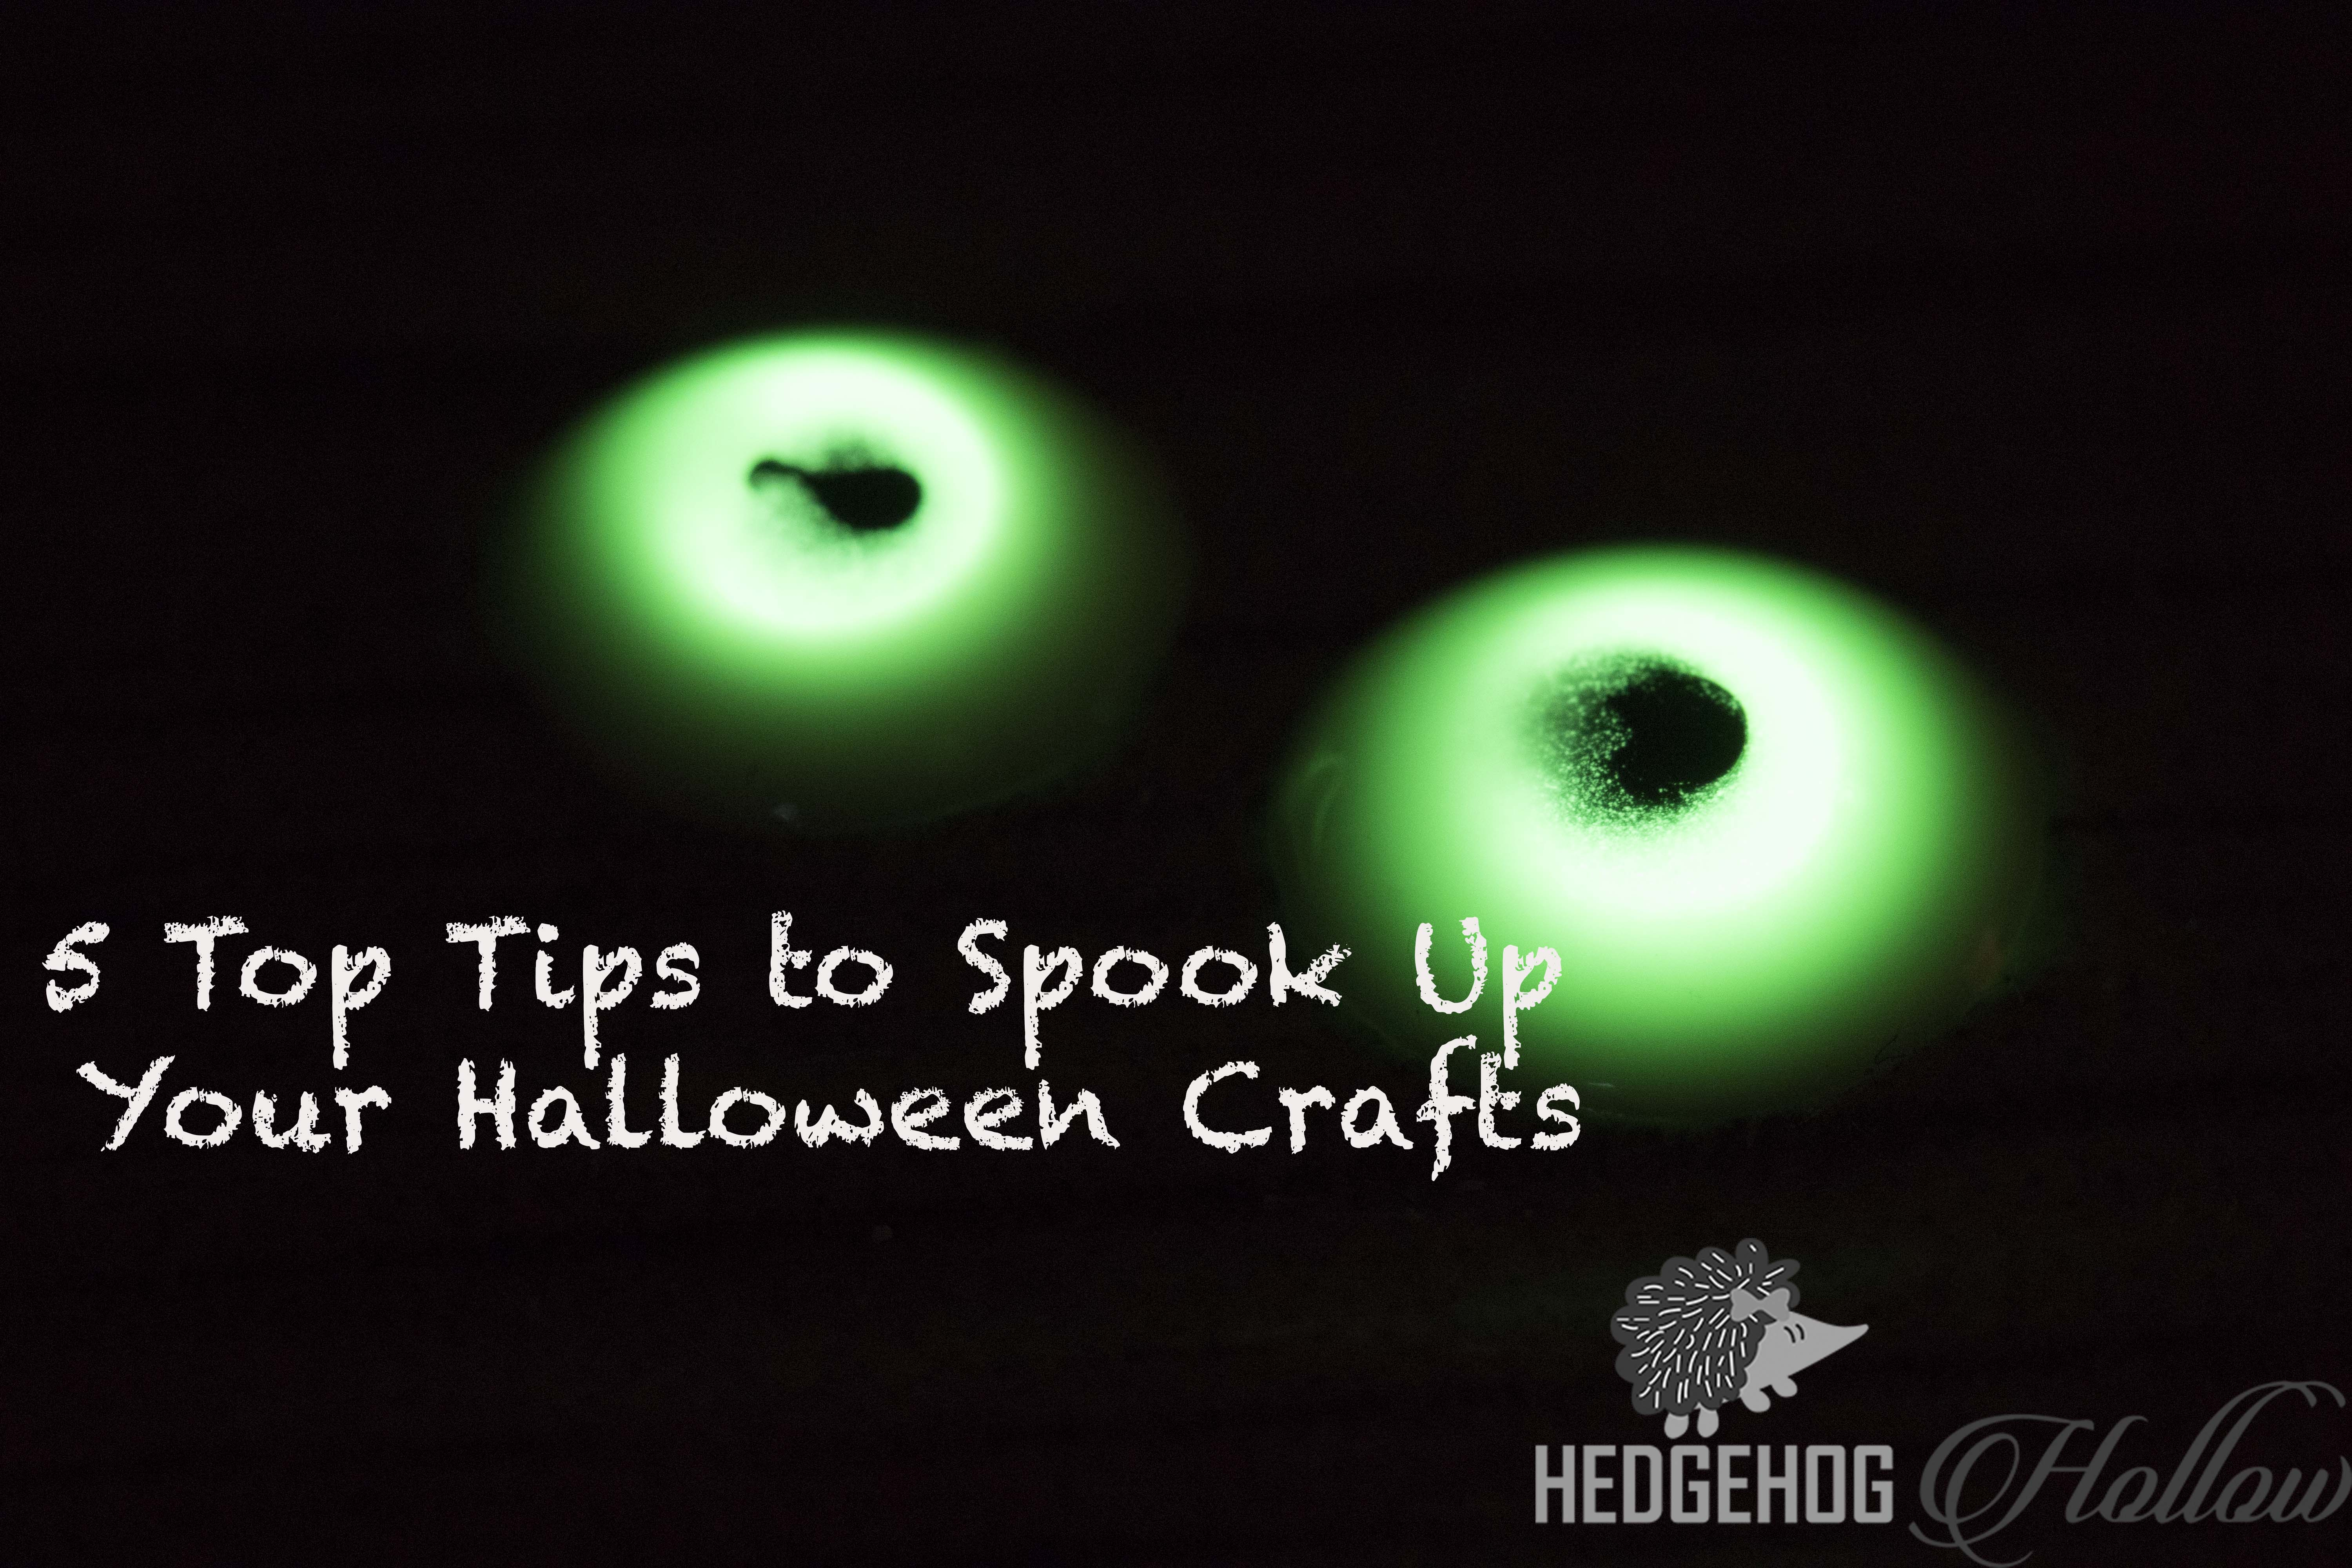 Top 5 Tips to Spook Up your Halloween Crafts